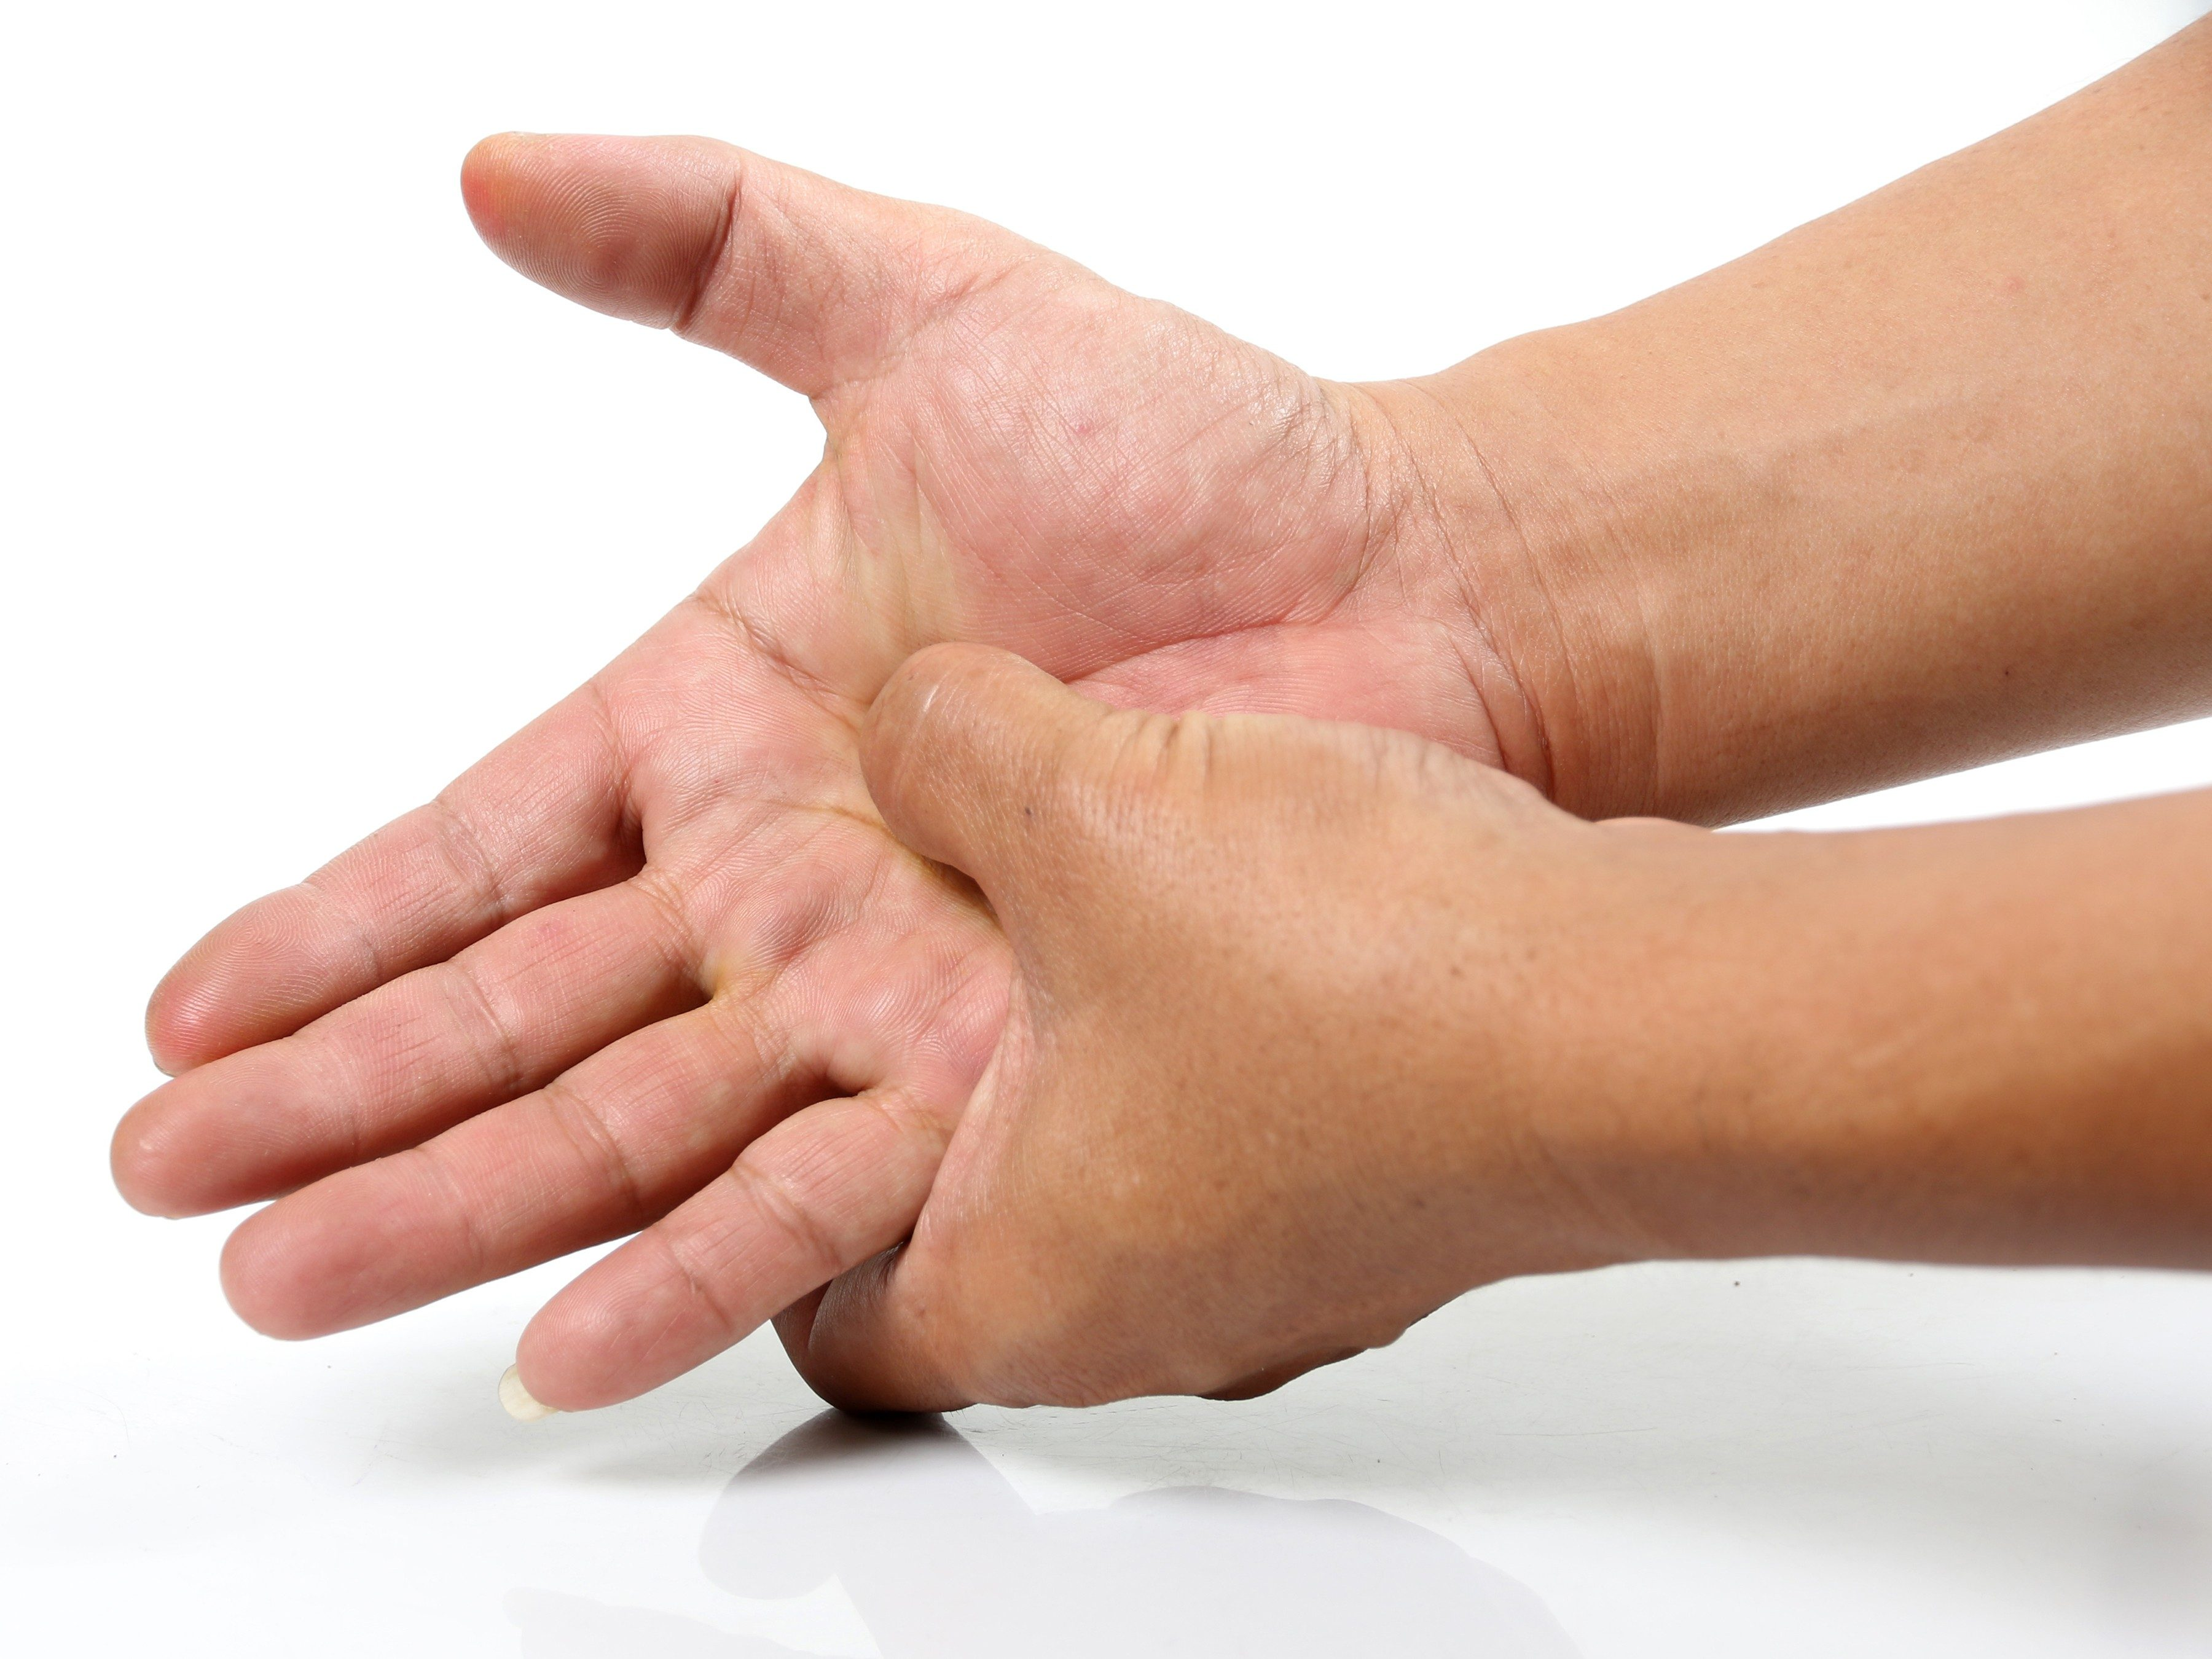 How to get rid of hiccups - Use Your Hands To Stop Hiccups